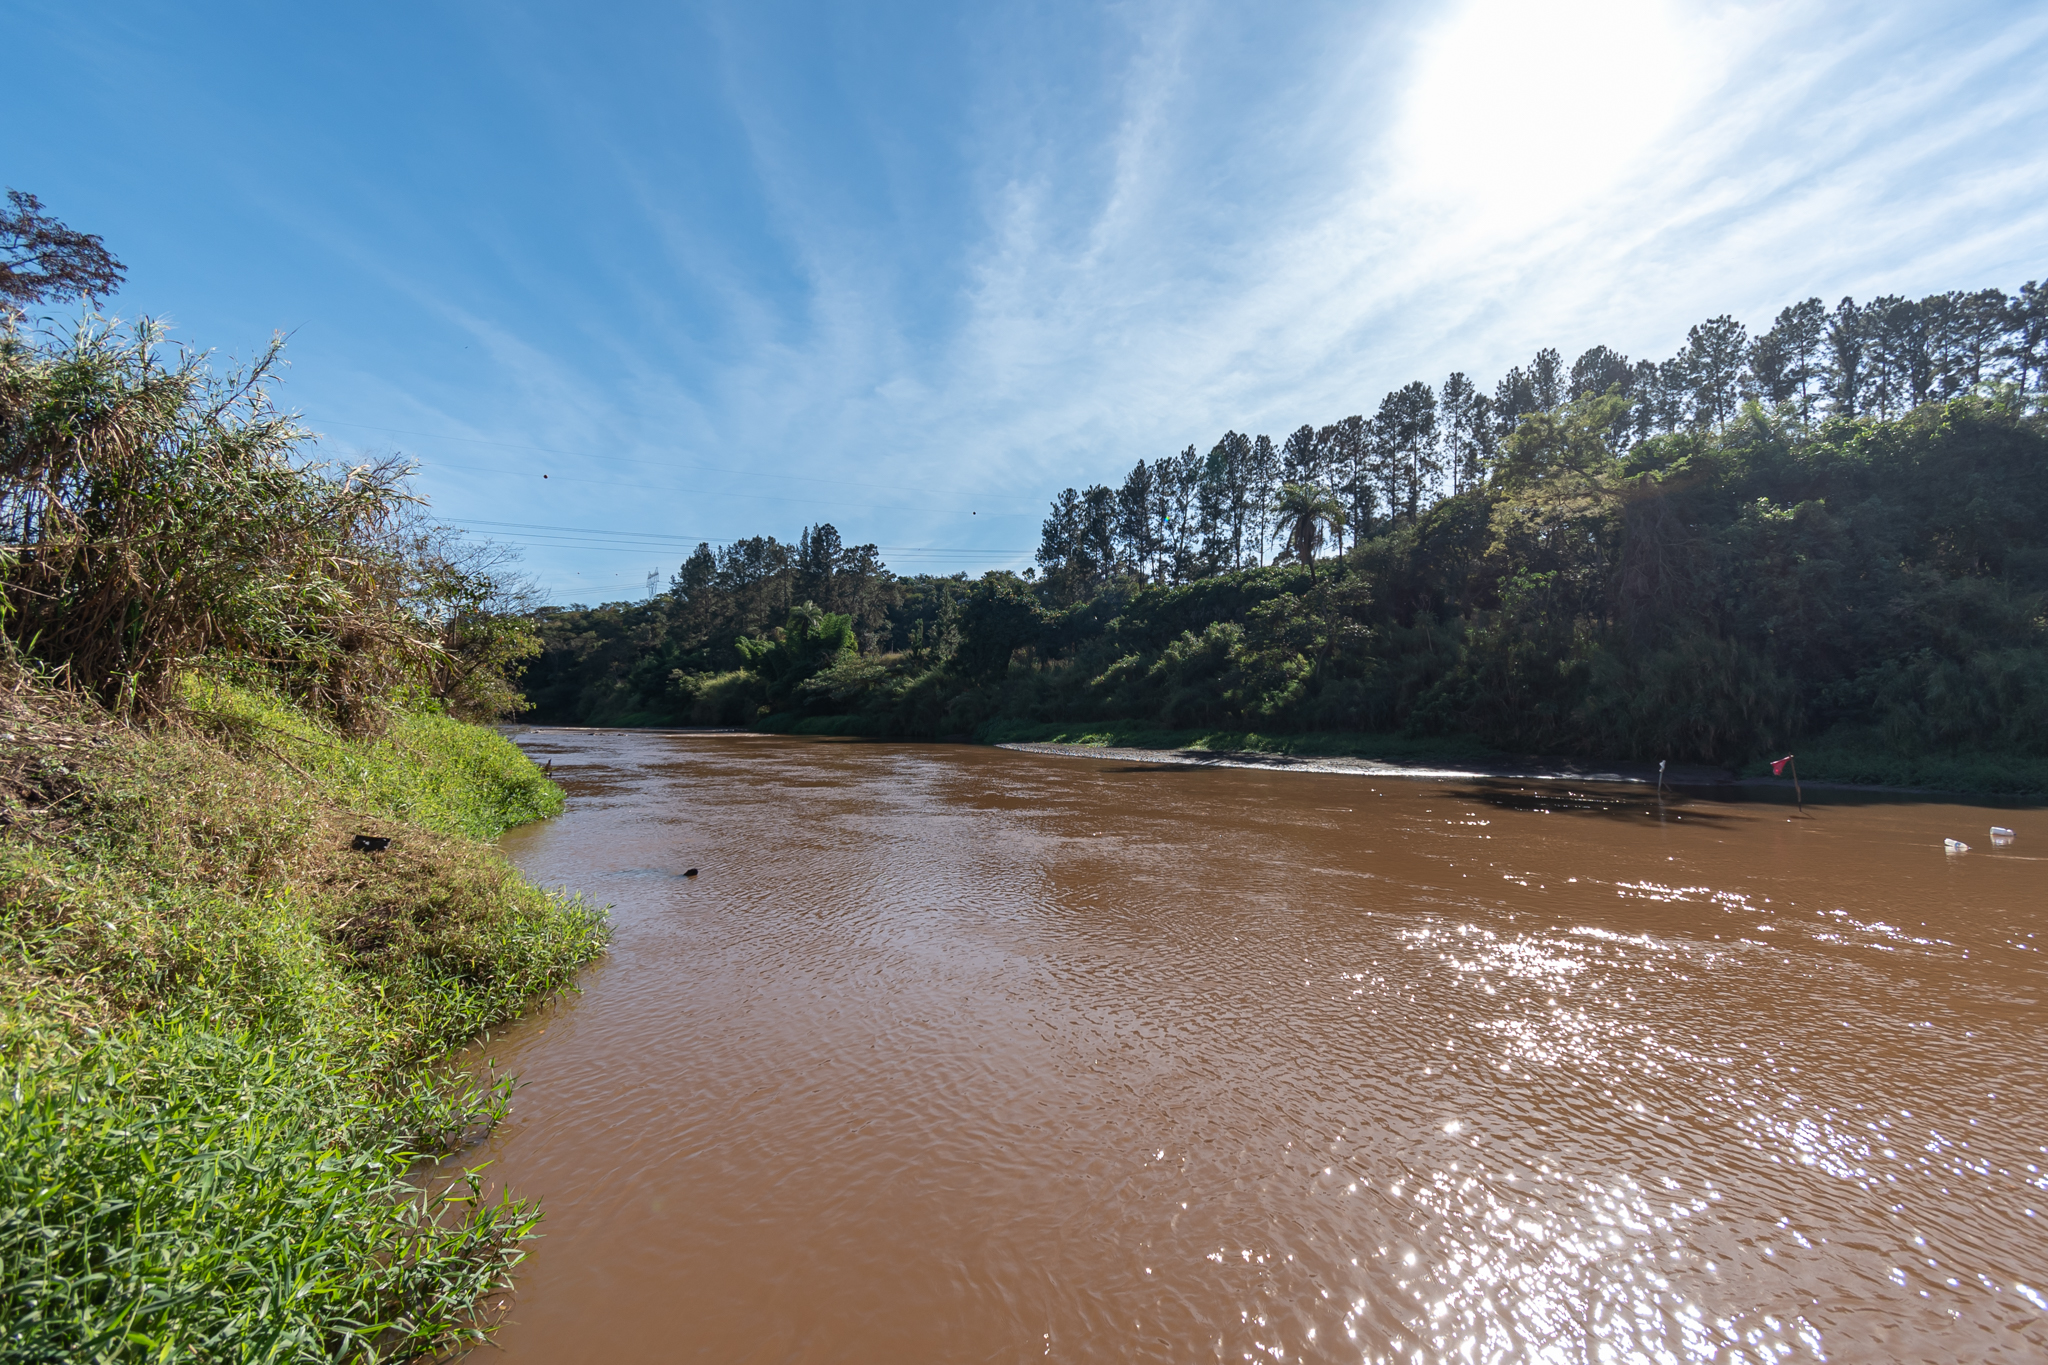 The Paraopeba River has been affected by the disaster caused by the collapse of a mining dam operated by Vale on 25 of January 2019. Image by Luiz Guilherme Fernandes for Mongabay